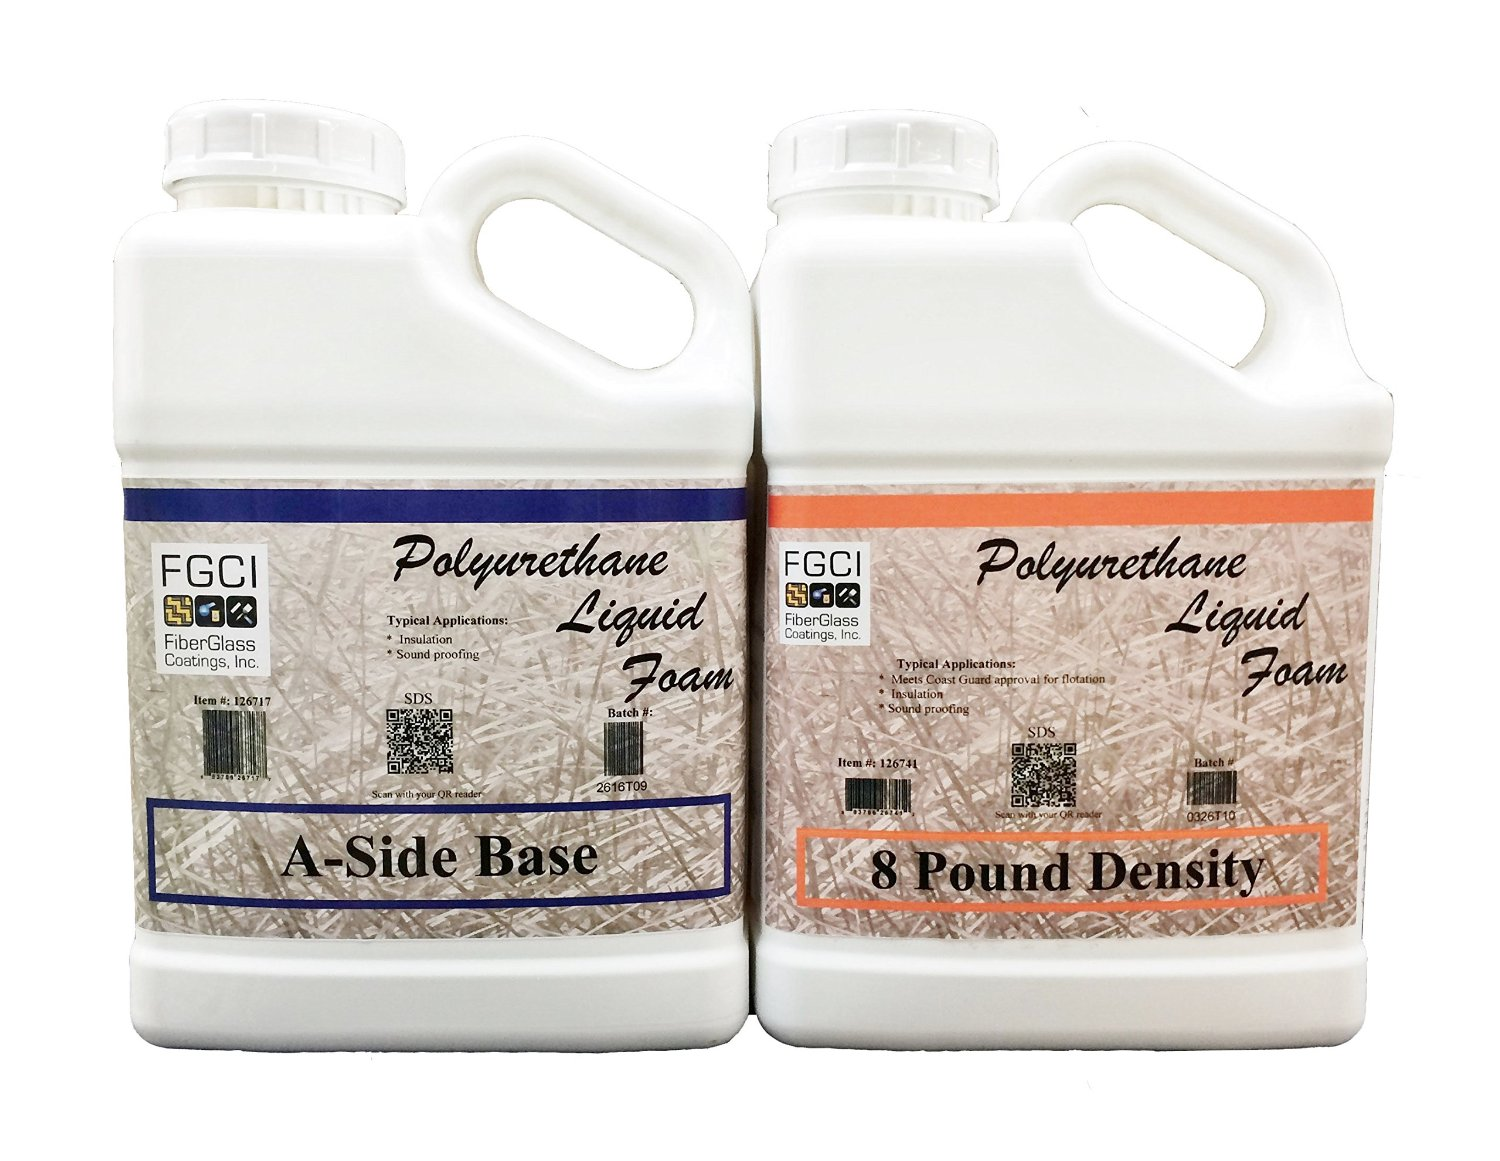 Liquid Urethane Foam Kit, 8 Lb Density, Includes 1 Gallon Part A & 1 Gallon Part B